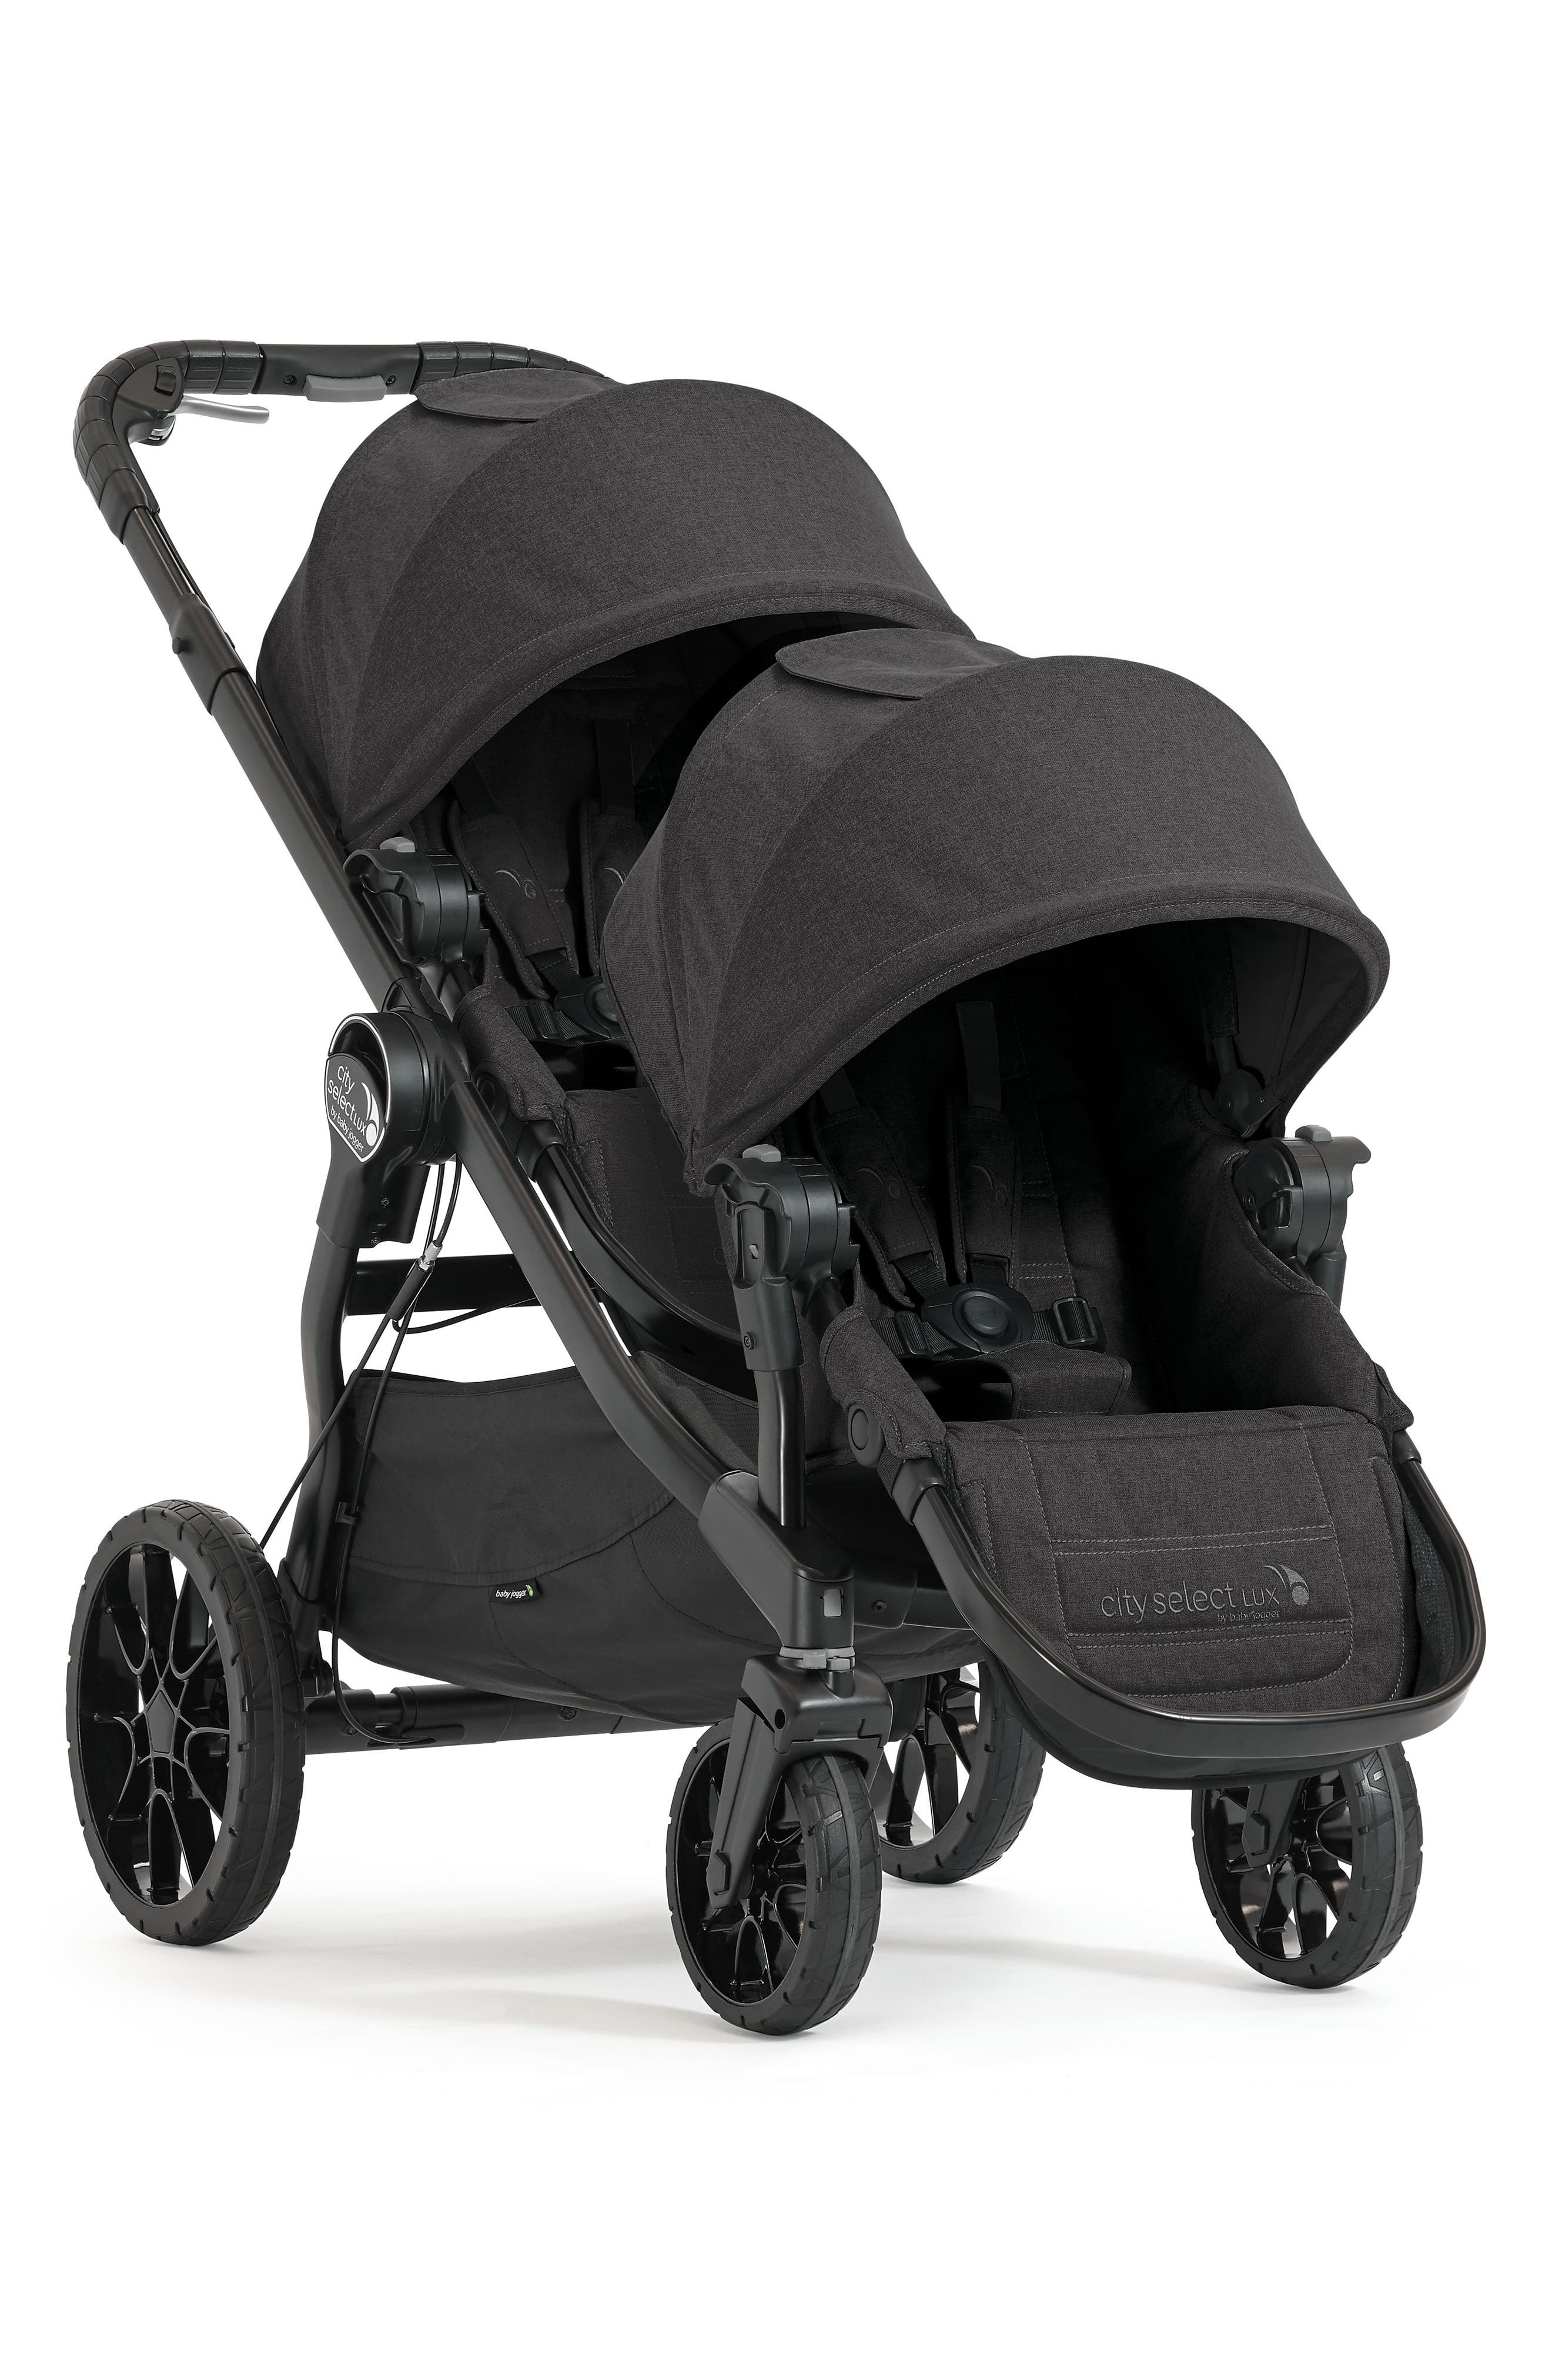 Baby Jogger City Select® LUX Stroller with Second Seat